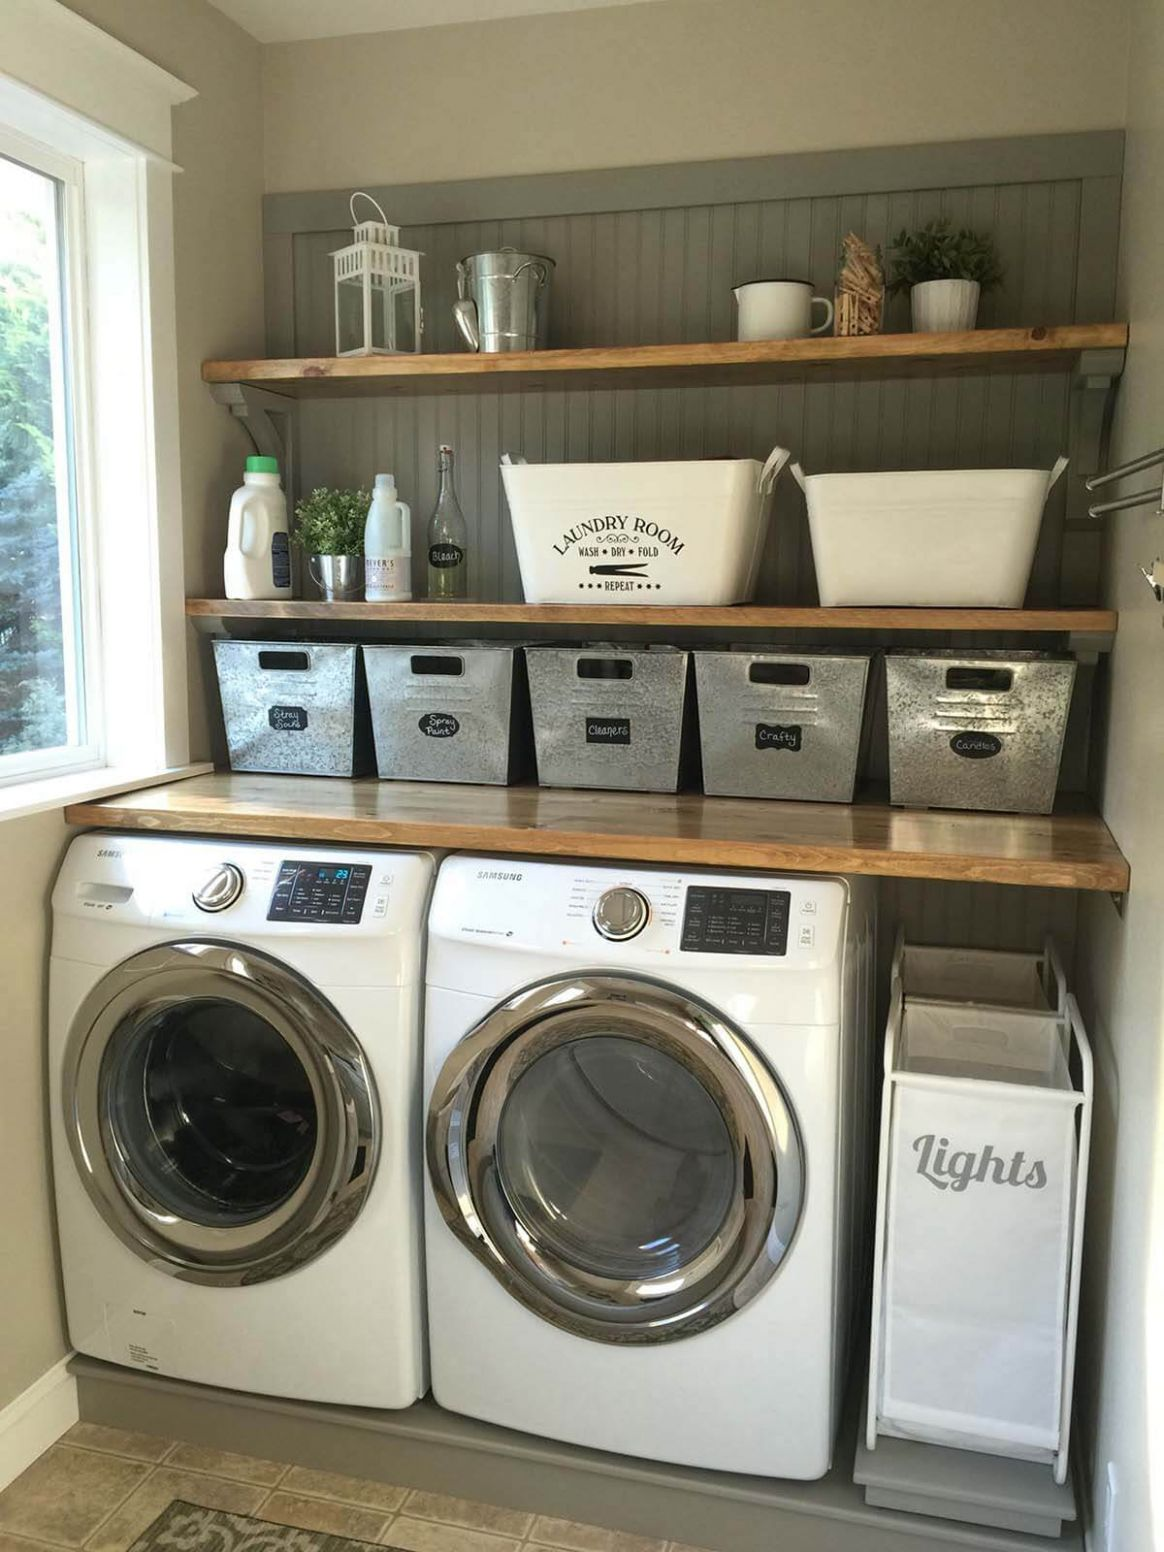 12 Best Small Laundry Room Design Ideas for 12